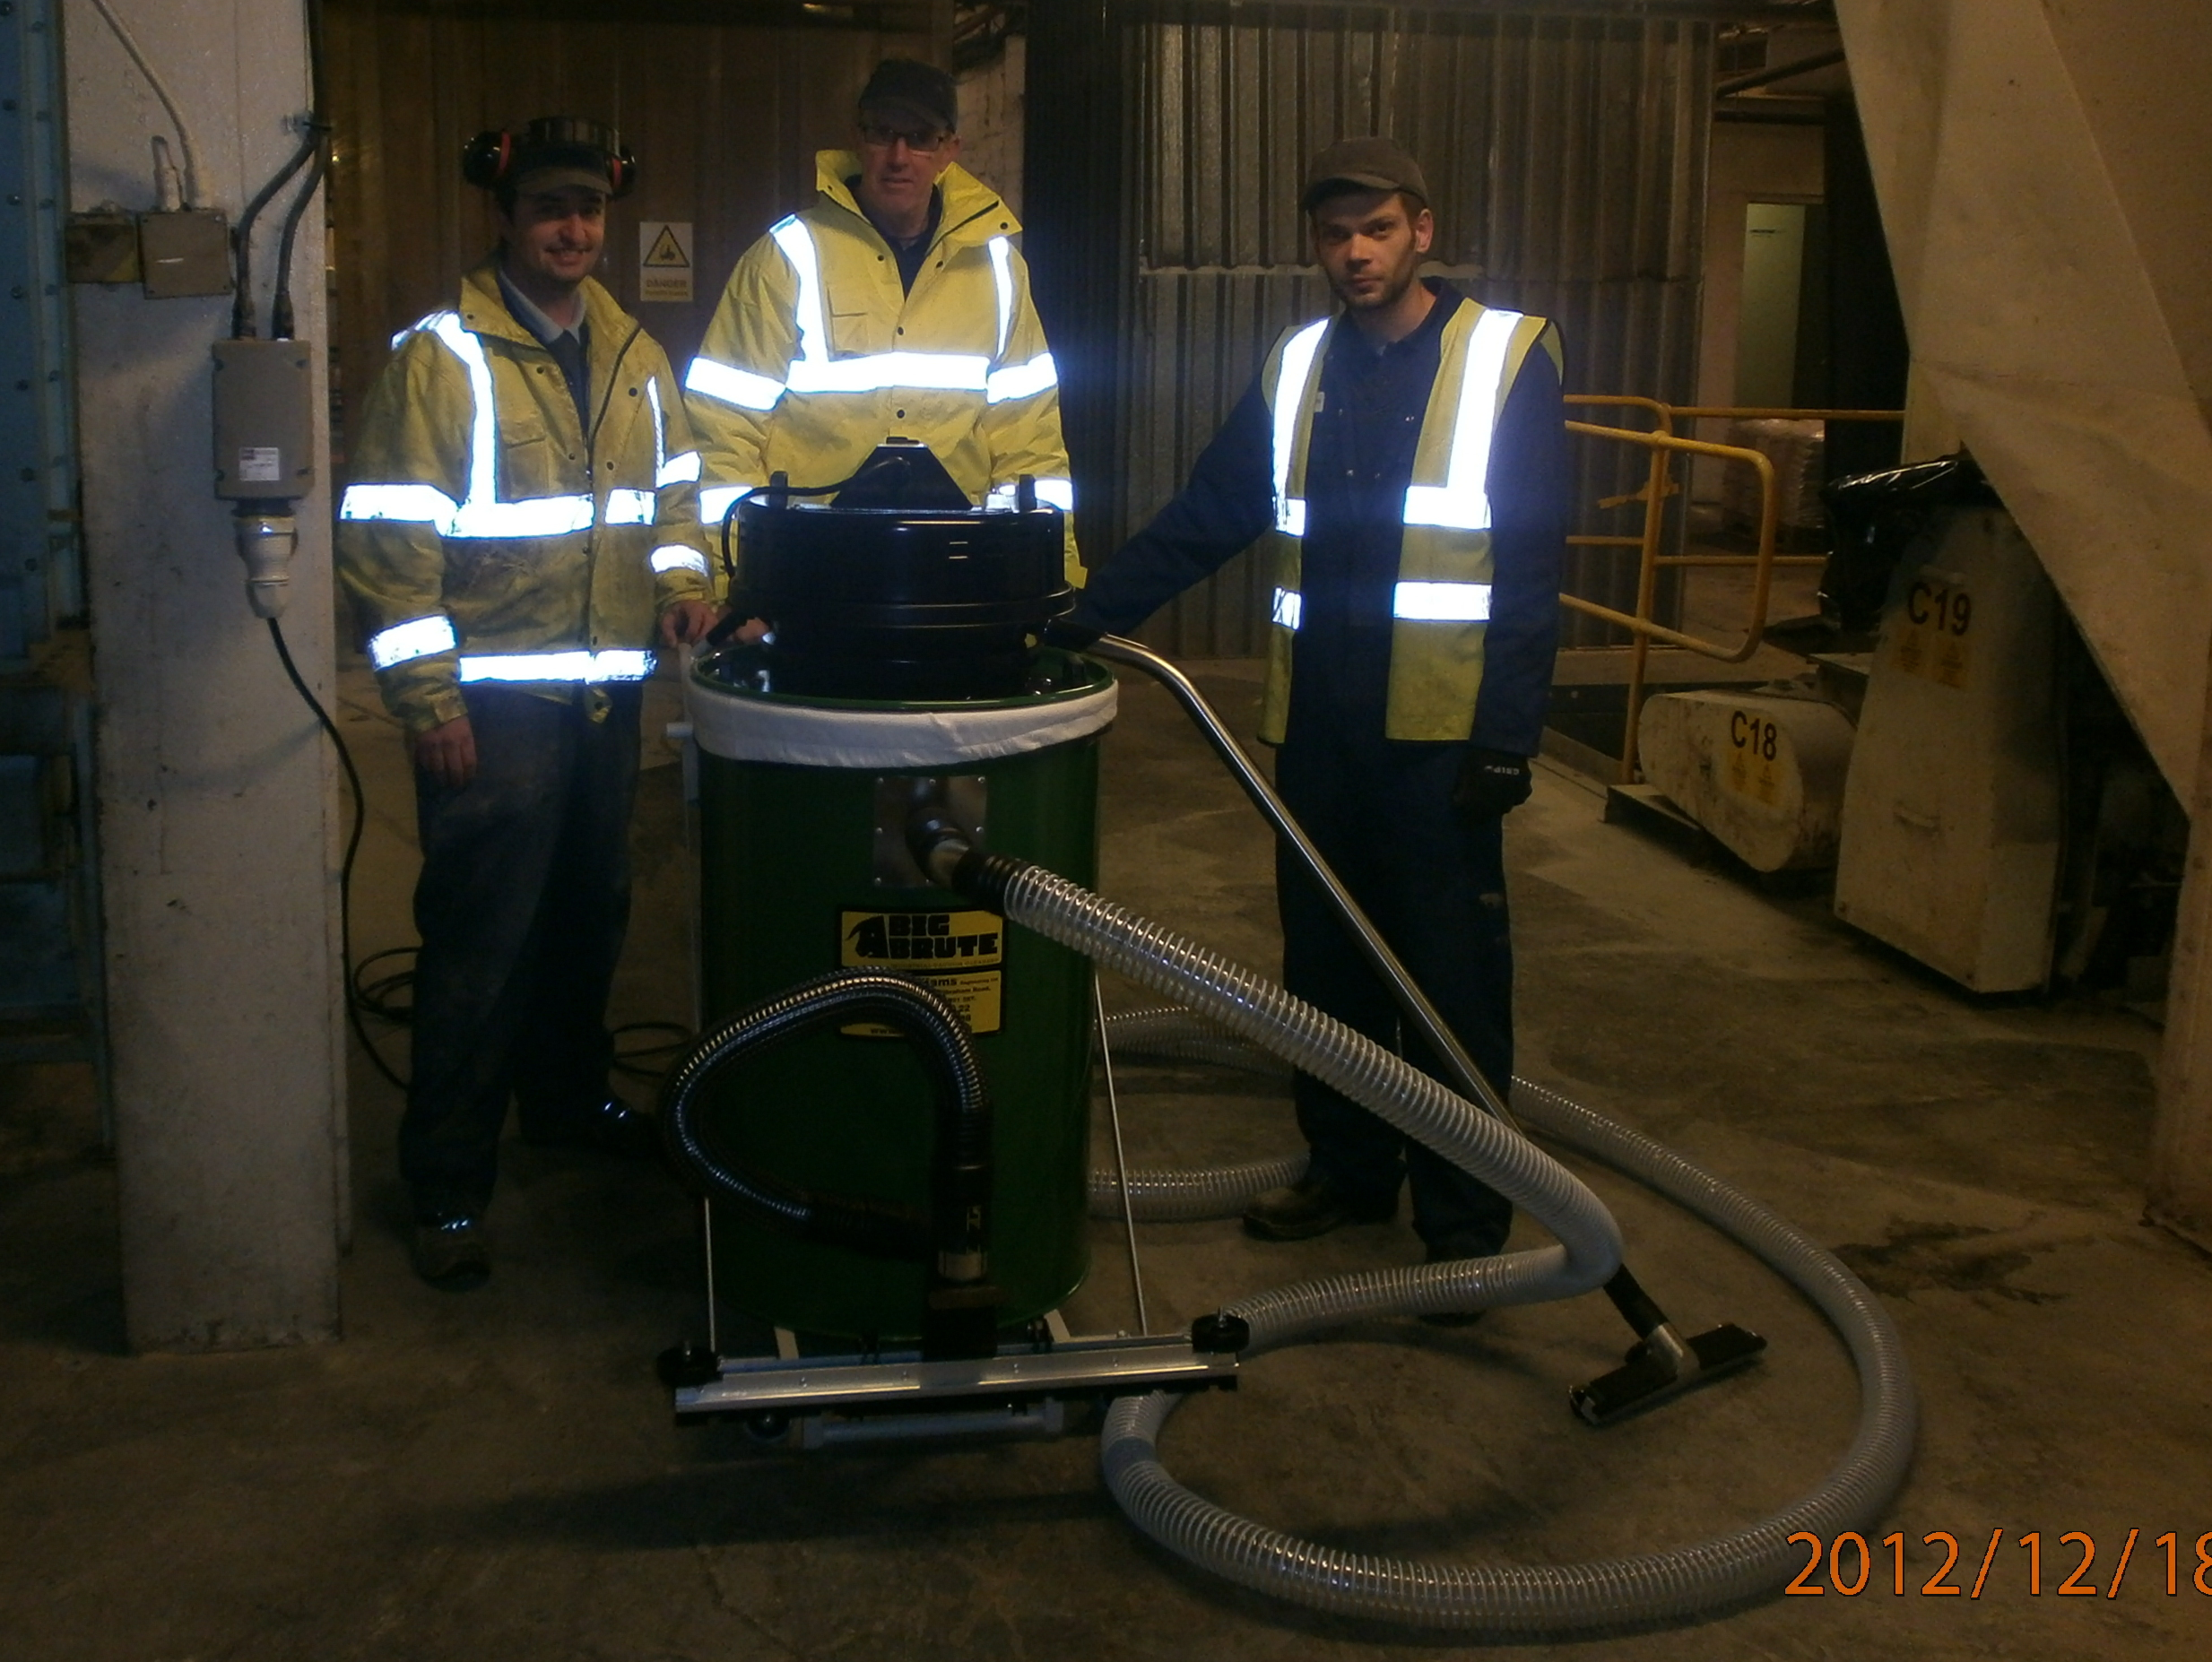 BOCM PAULS Bury St Edmunds With Their Big Brute Popular Industrial Vacuum Cleaner